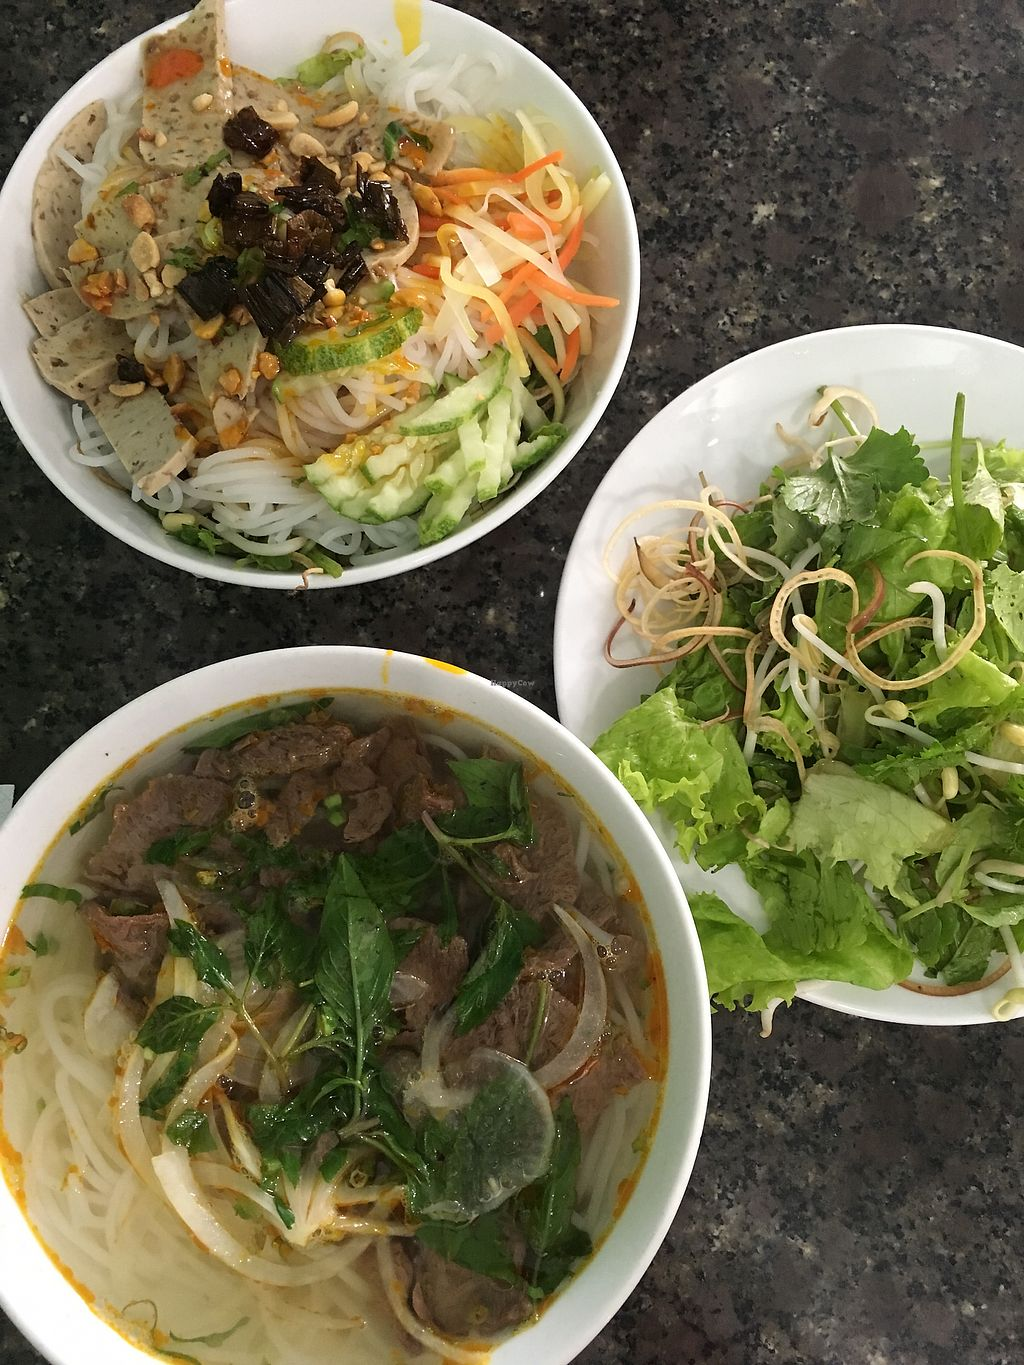 """Photo of Ngoc Chi  by <a href=""""/members/profile/Sharen"""">Sharen</a> <br/>Noodle fish sauce and beef noodle soup <br/> July 1, 2017  - <a href='/contact/abuse/image/25980/275484'>Report</a>"""